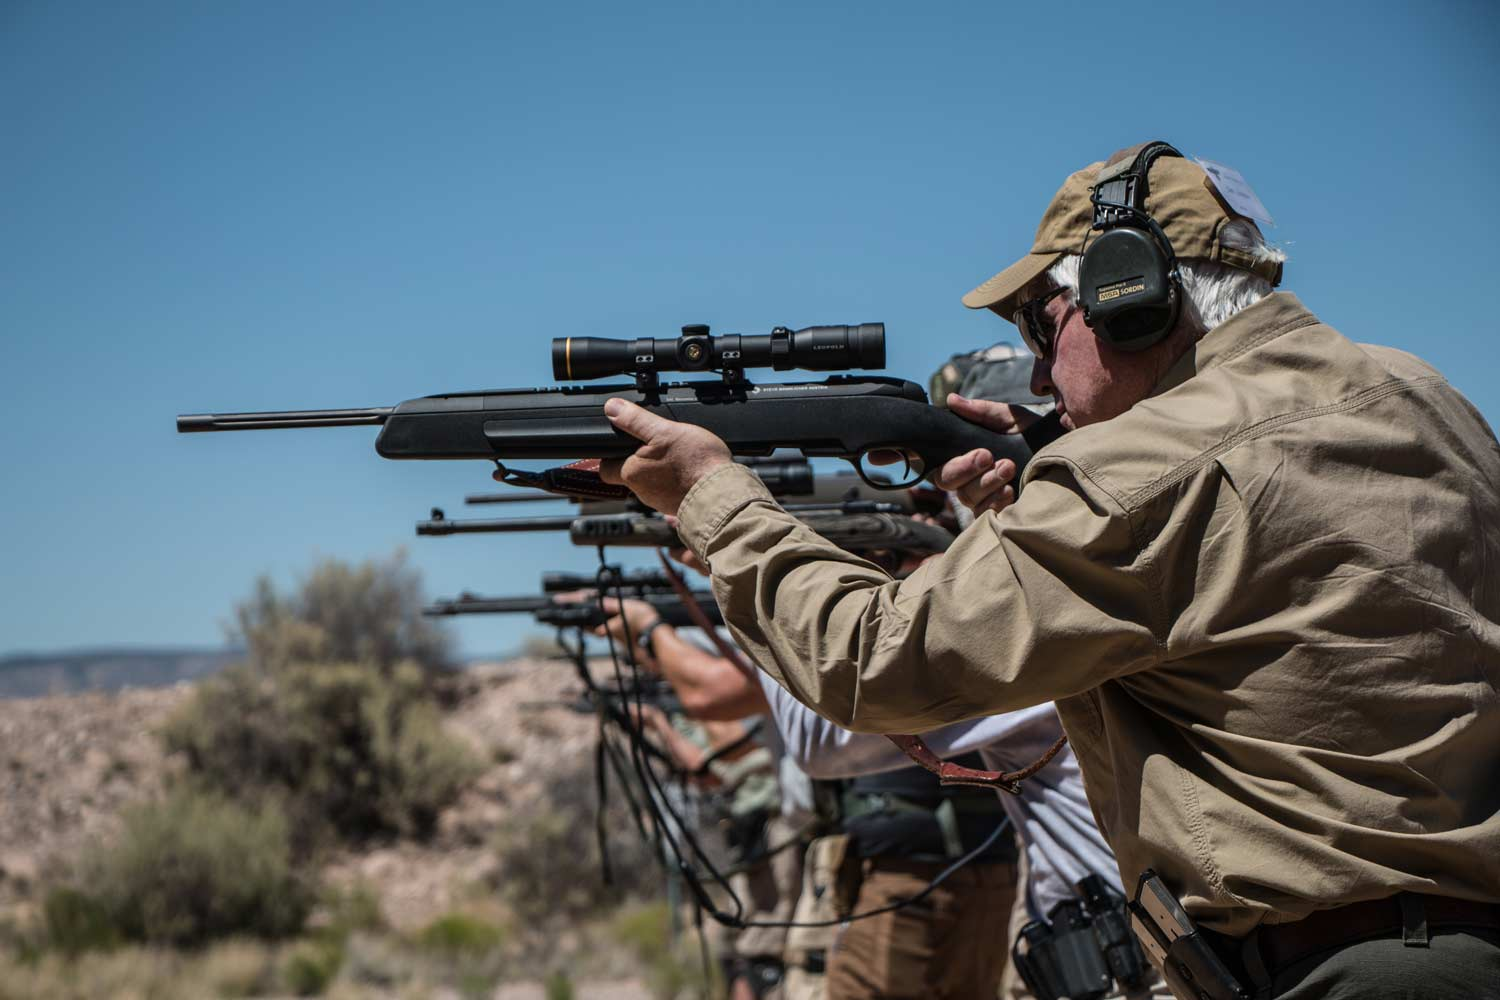 A line of men aim scout rifles at a shooting range.